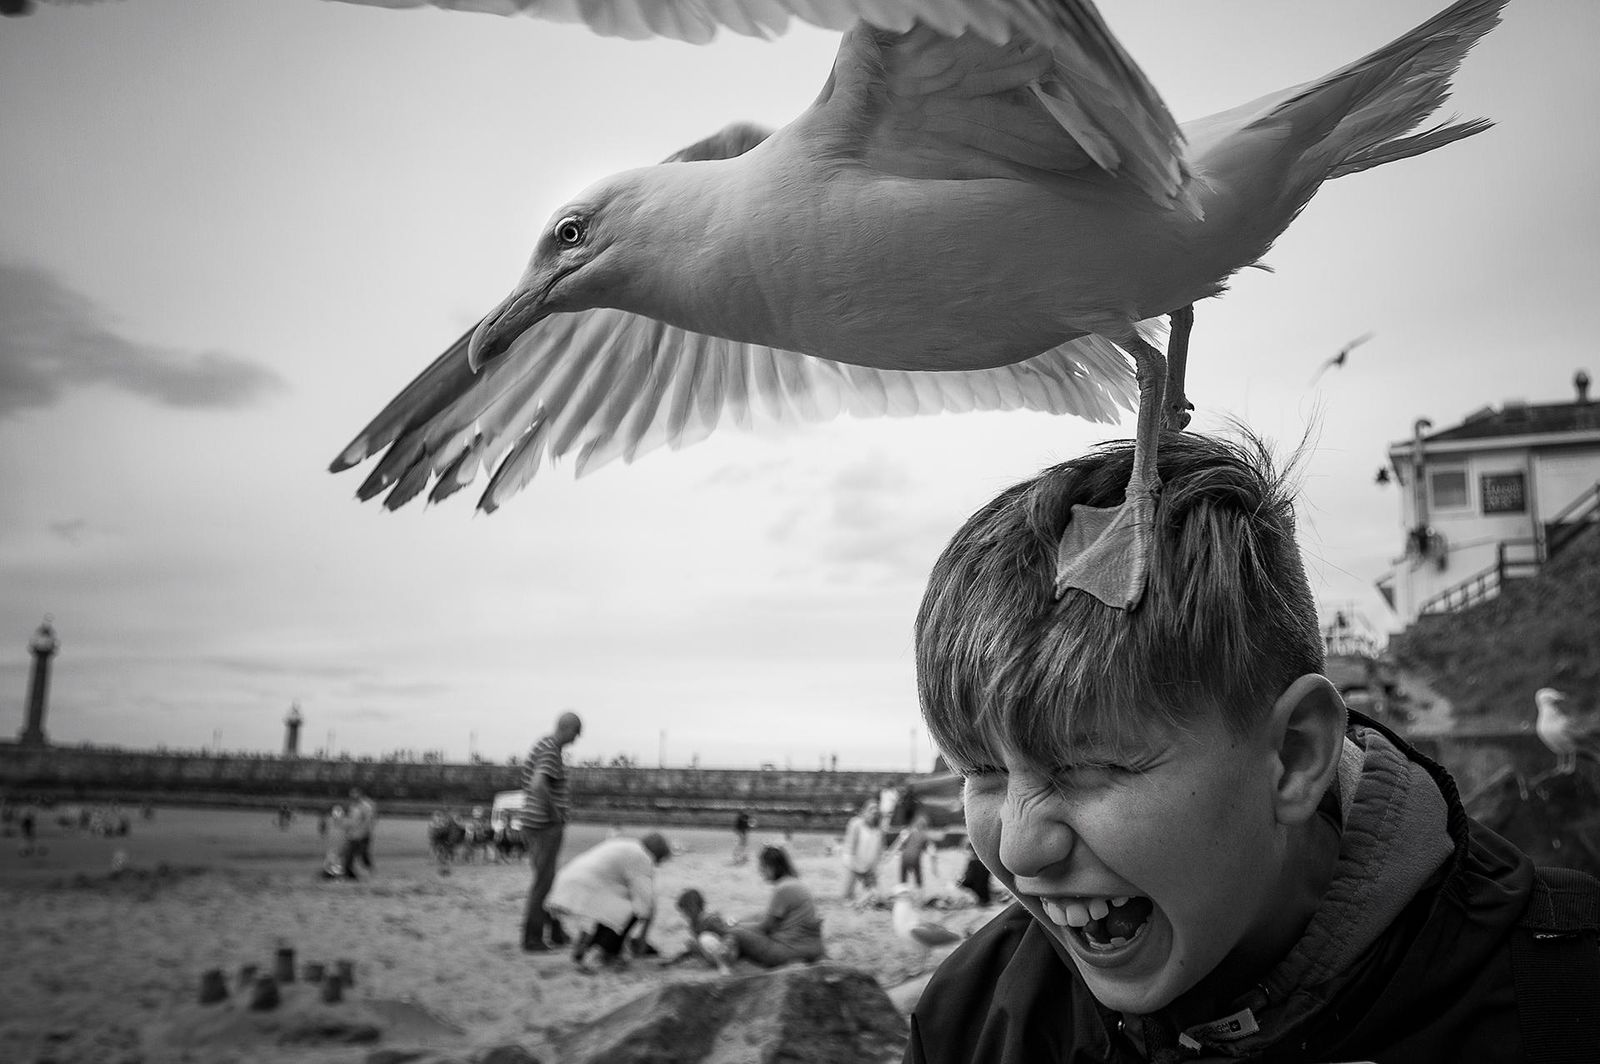 Joe and the herring gull